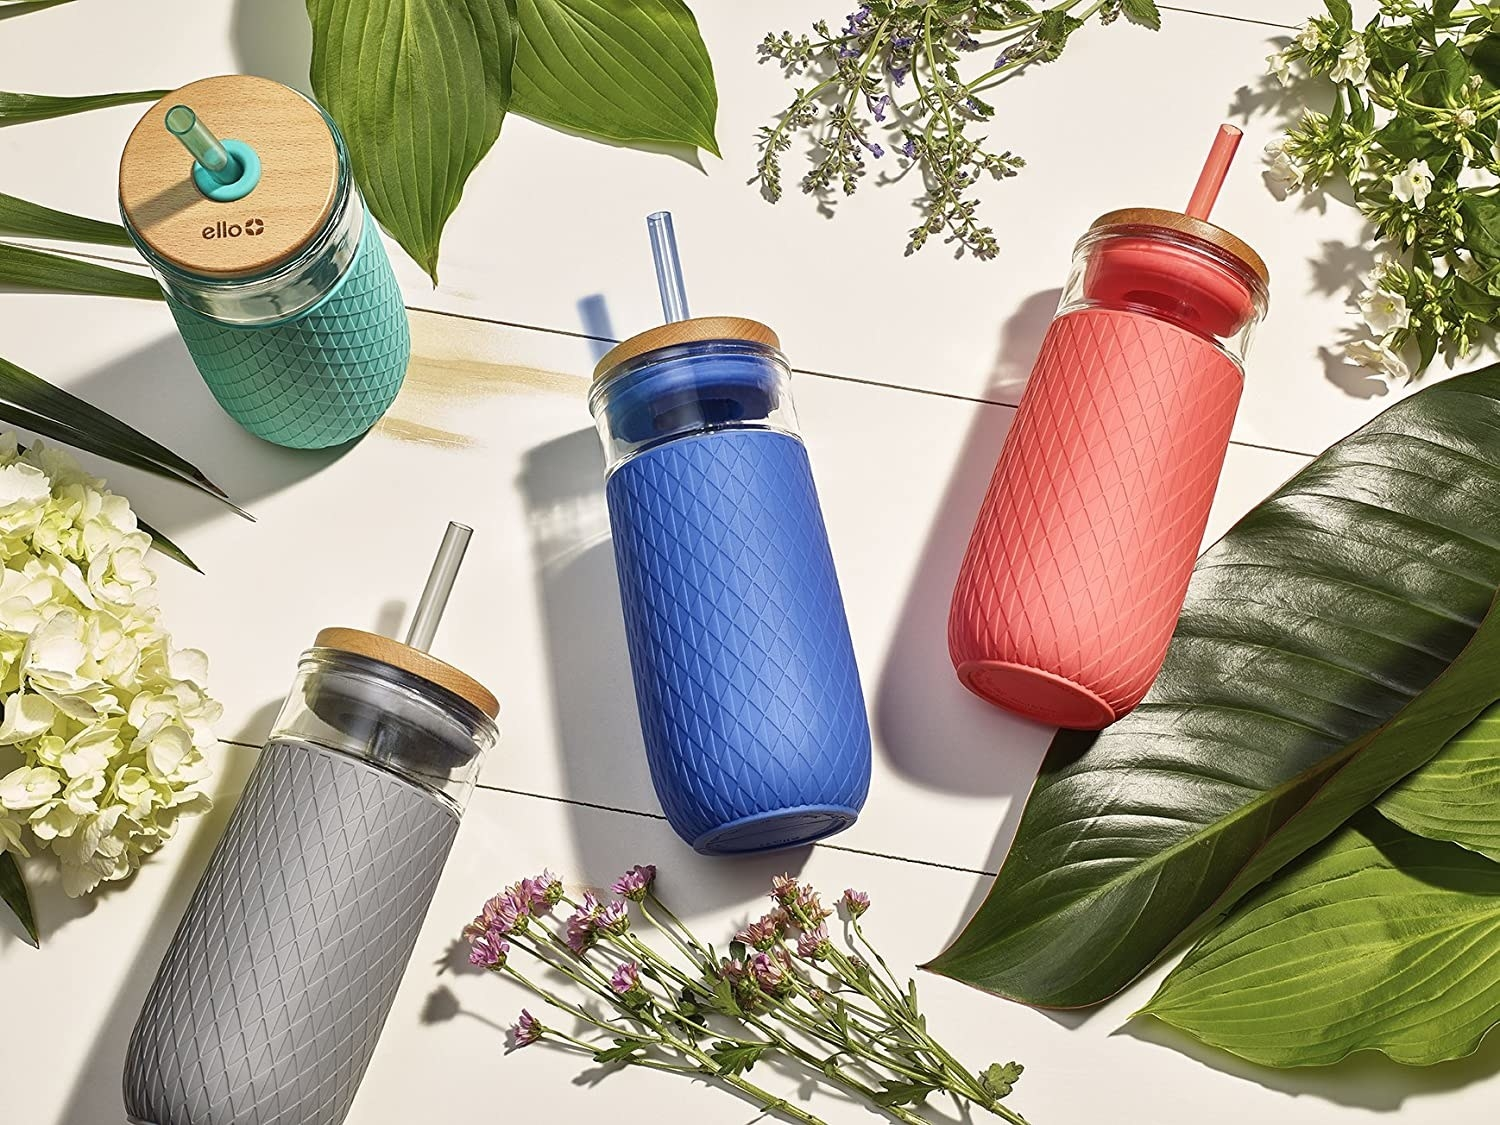 four of the tumblers surrounded by plants